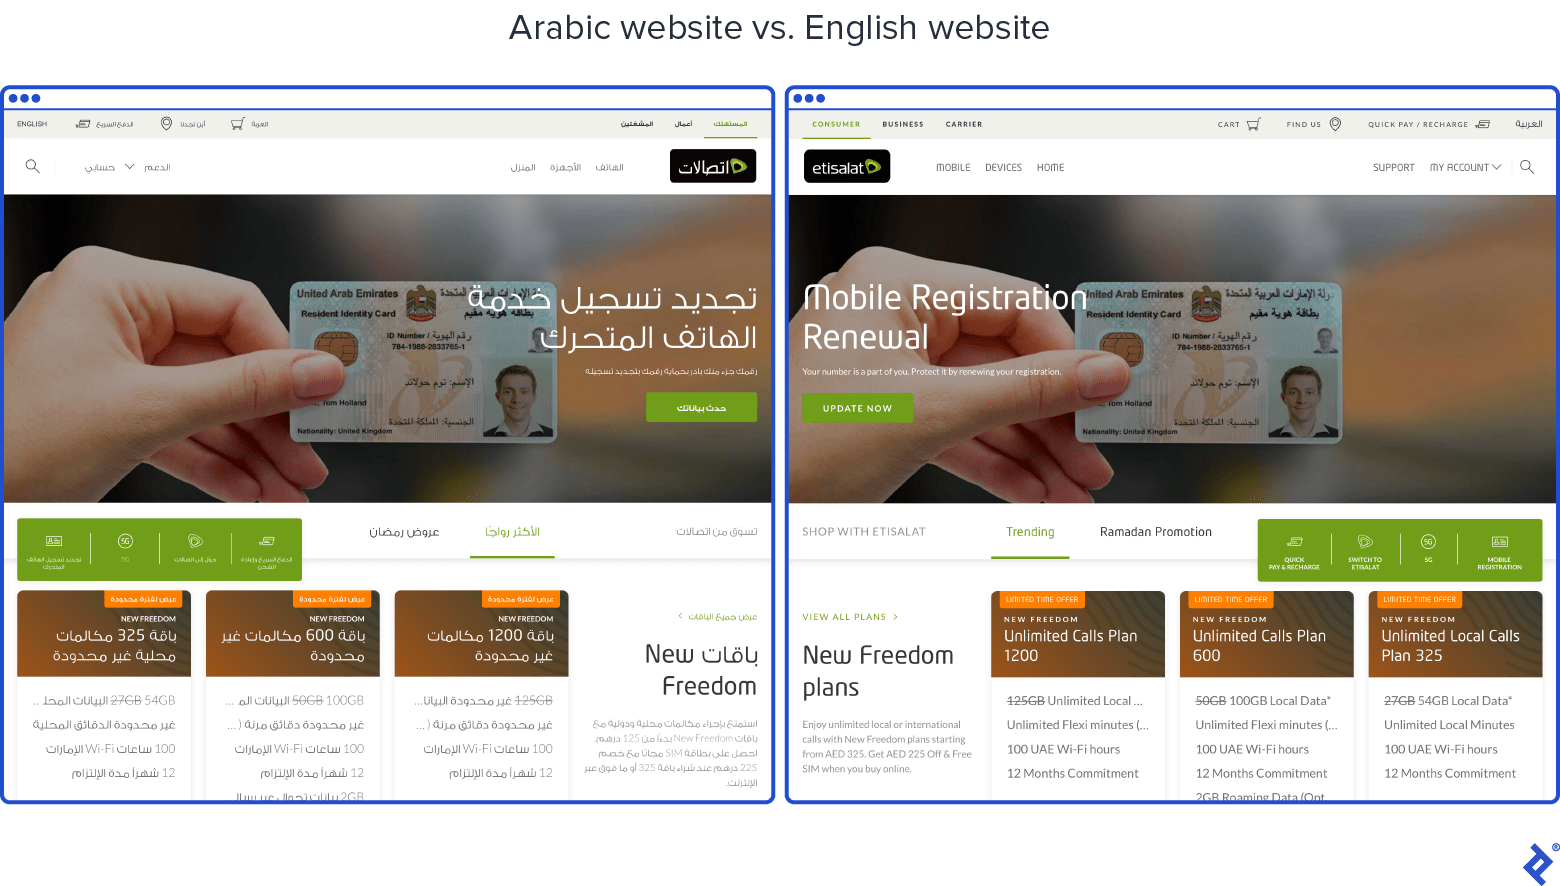 Website in Arabic and English languages. Localization impacts the page design as Arabic reads from right to left.